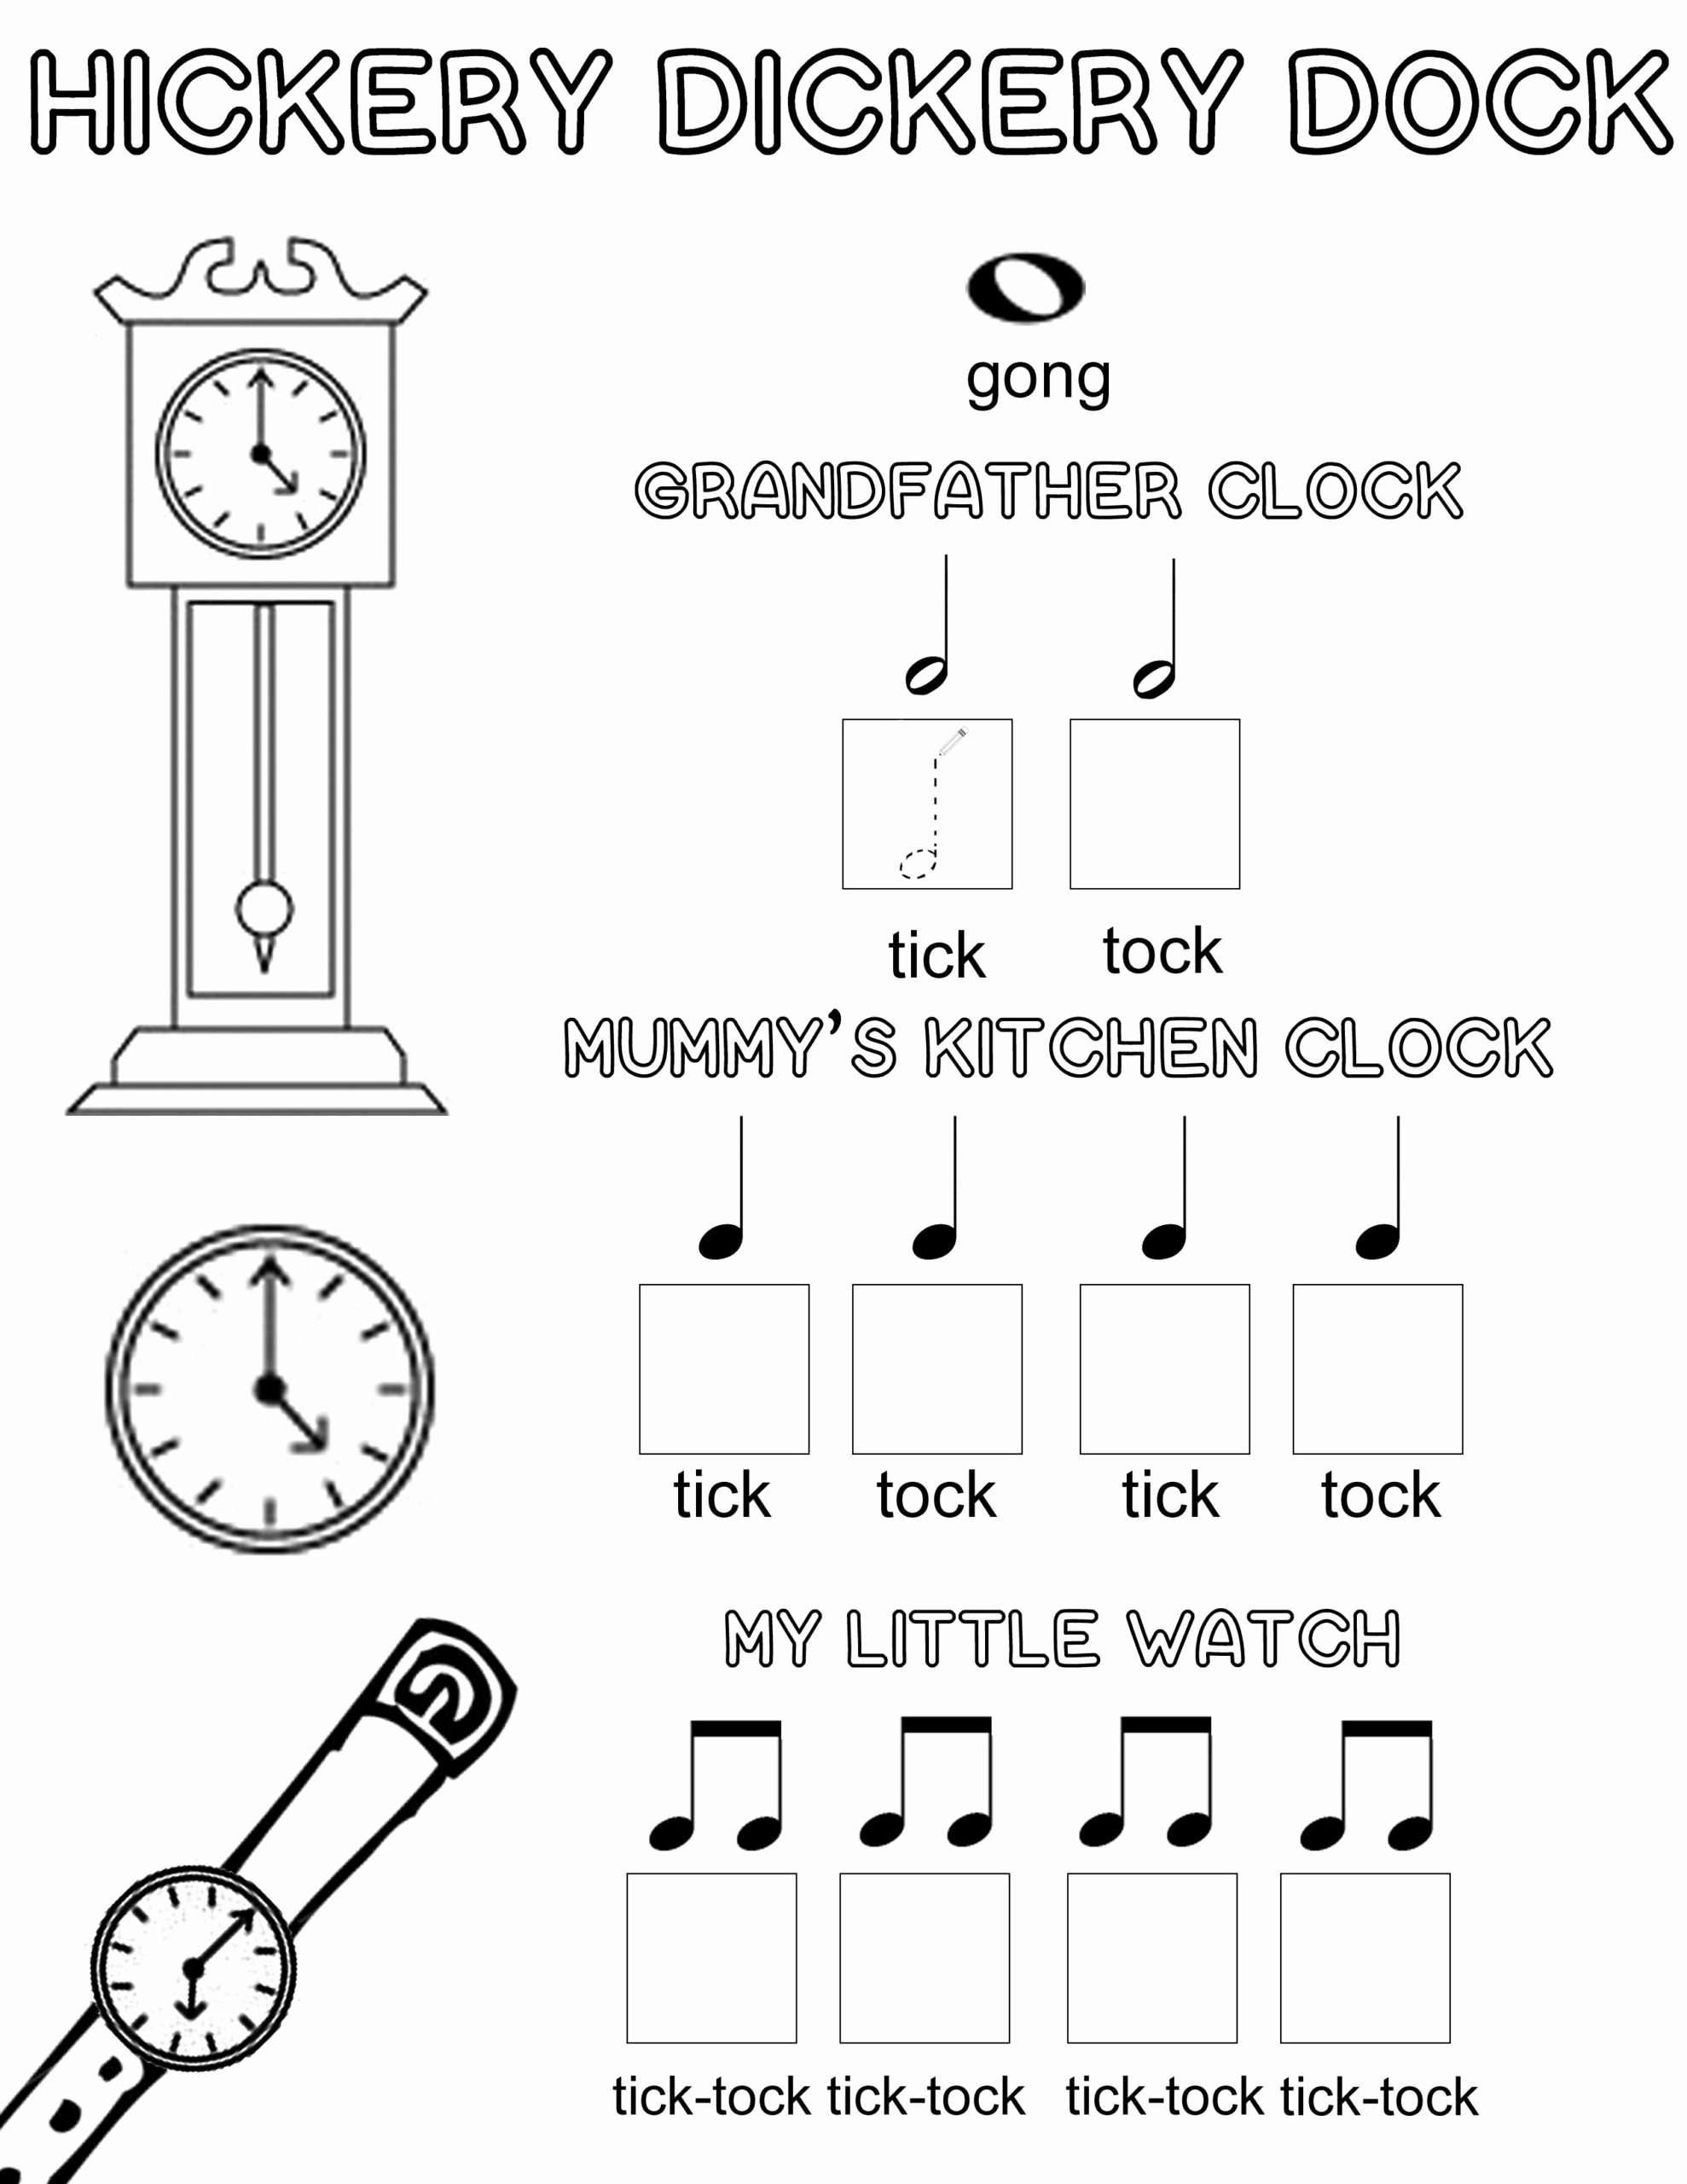 Piano Worksheets for Preschoolers Kids Free Music theory Printable Colouring Activity with